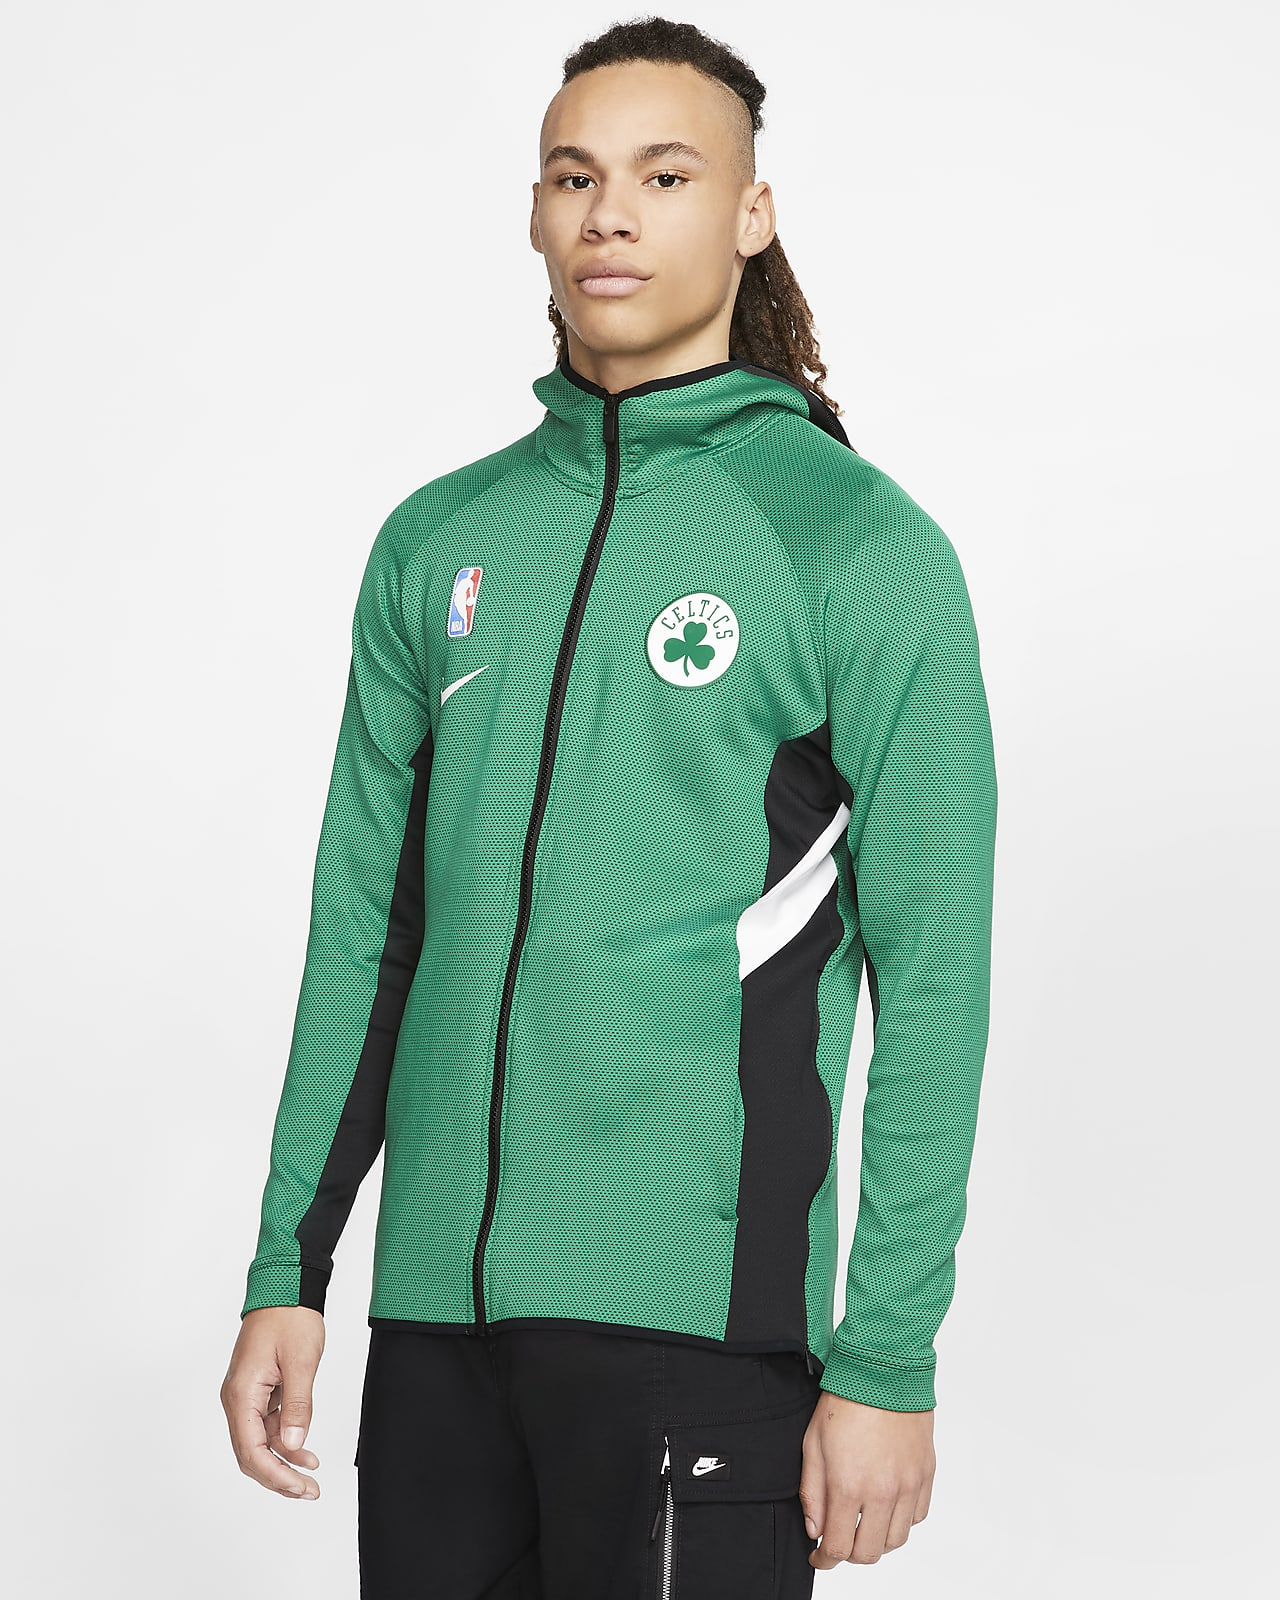 Boston Celtics Showtime Men's Nike Therma Flex NBA Hoodie